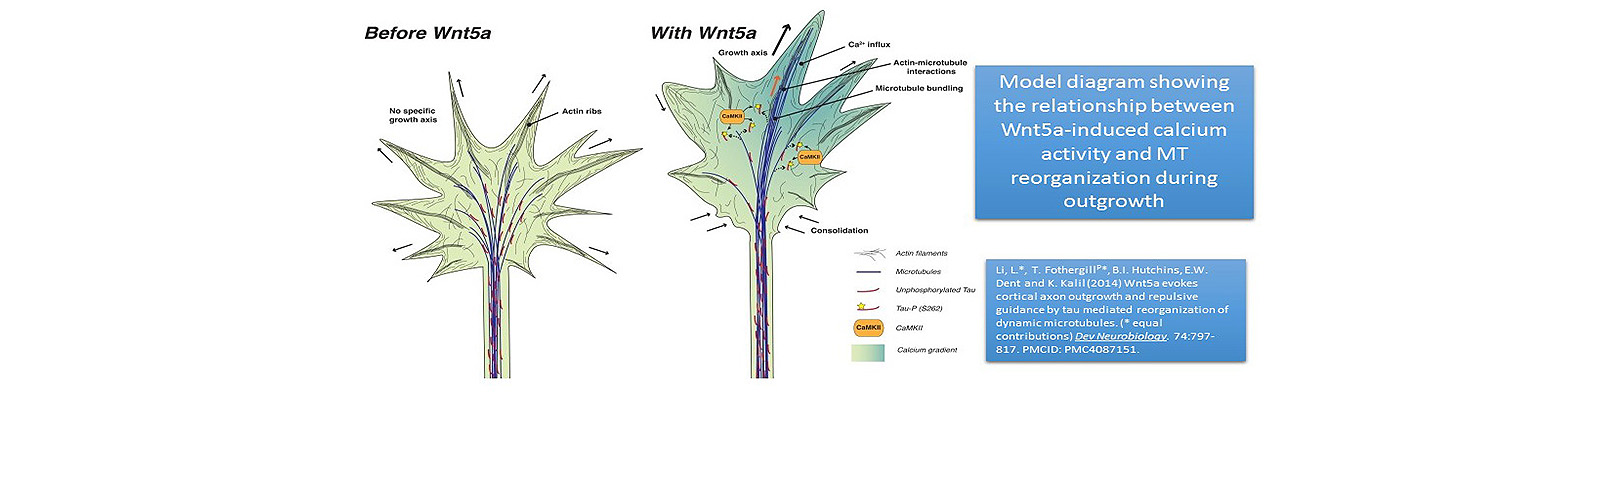 Model diagram showing the relationship between Wnt5a-induced calcium activity and MT reorganization during outgrowth